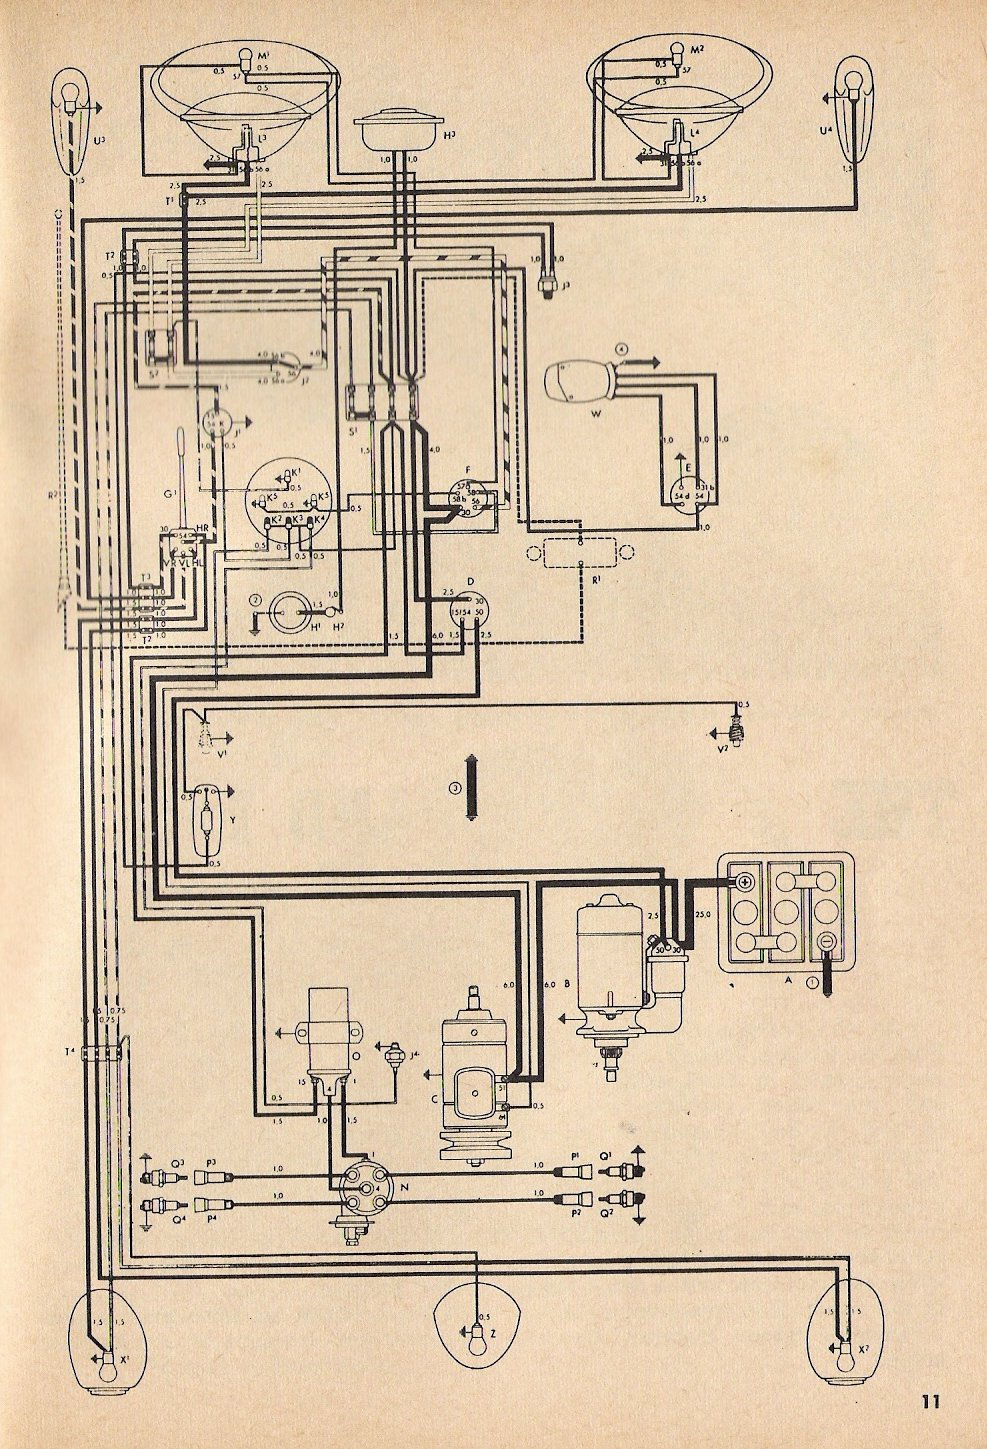 bug_toaug57 thesamba com type 1 wiring diagrams vw generator to alternator conversion wiring diagram at sewacar.co